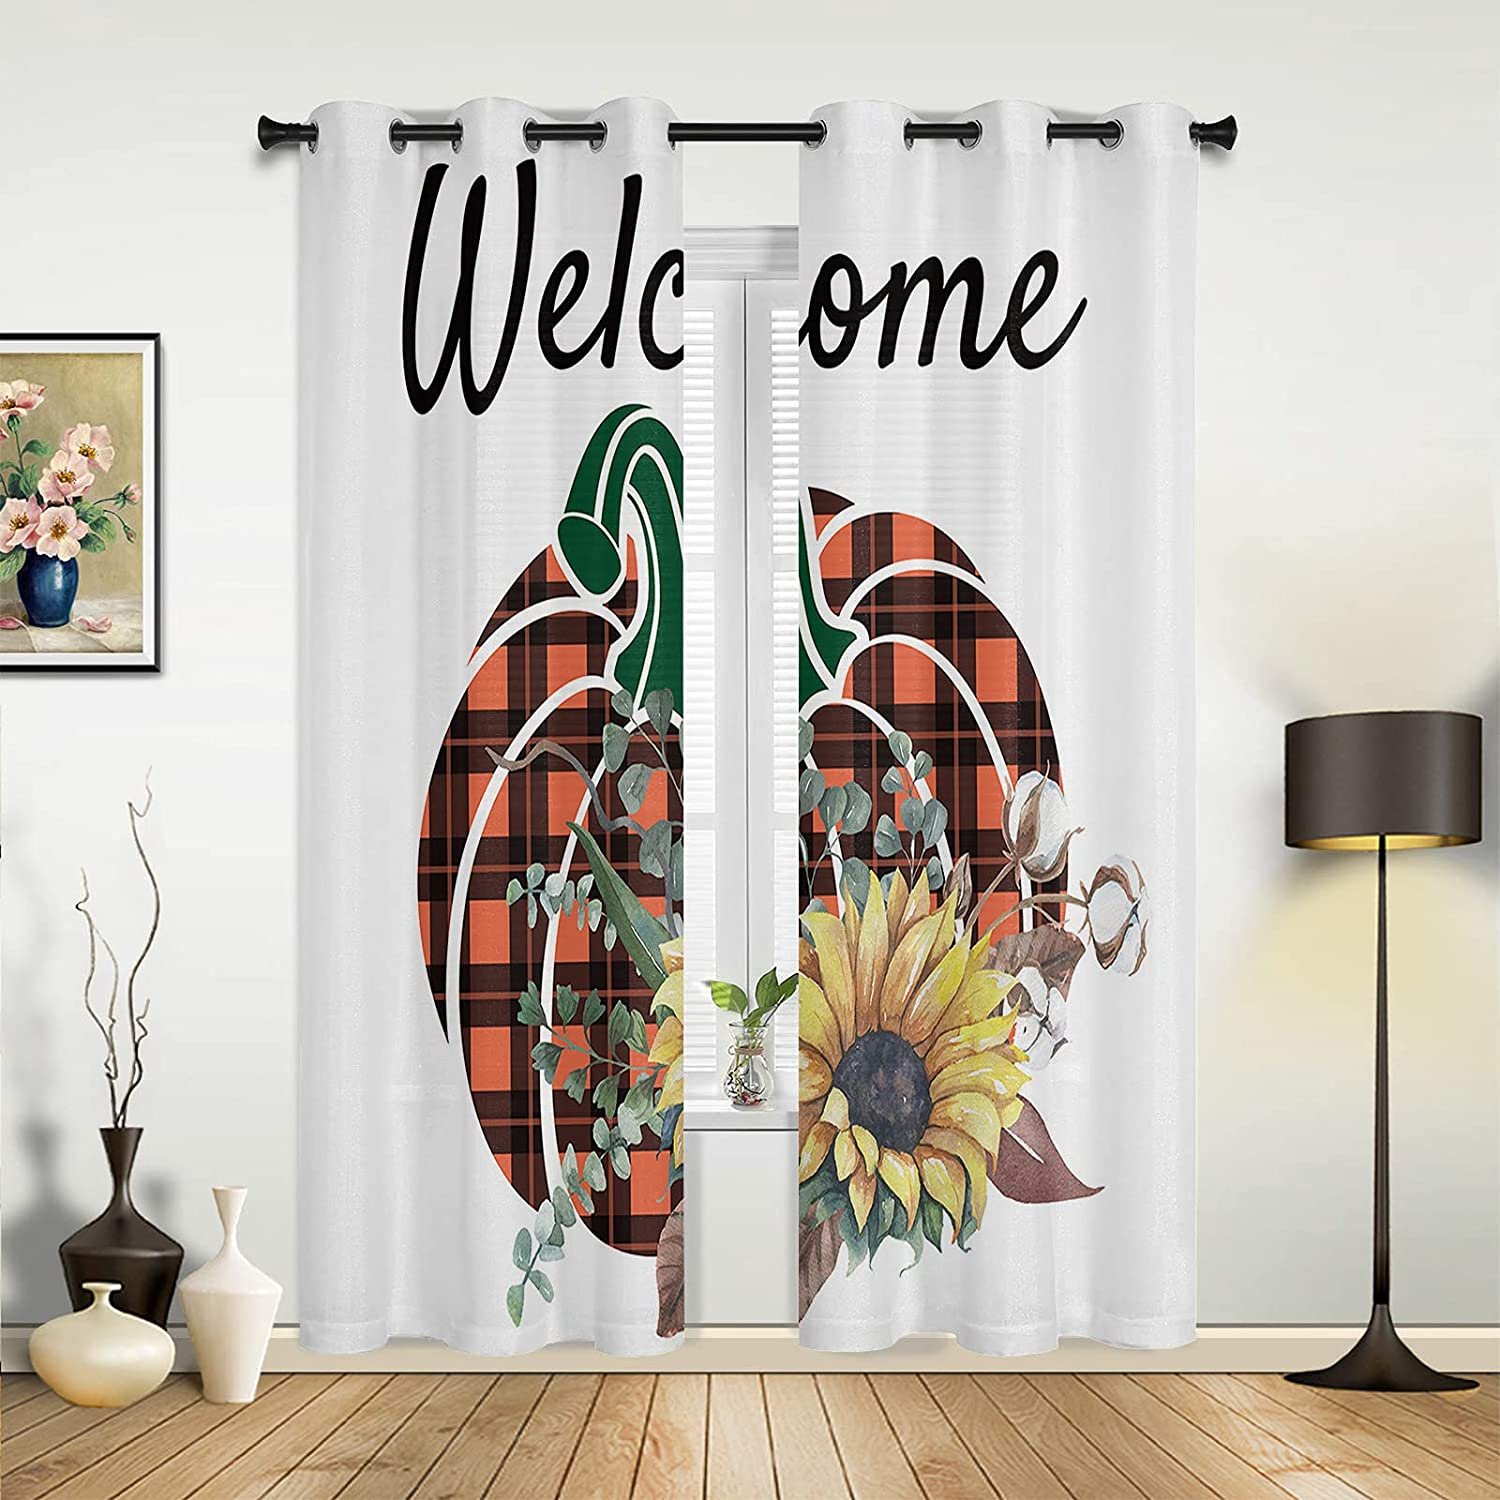 Window Sheer Curtains for Bedroom Quantity limited safety Room Living Thanksgivi Welcome